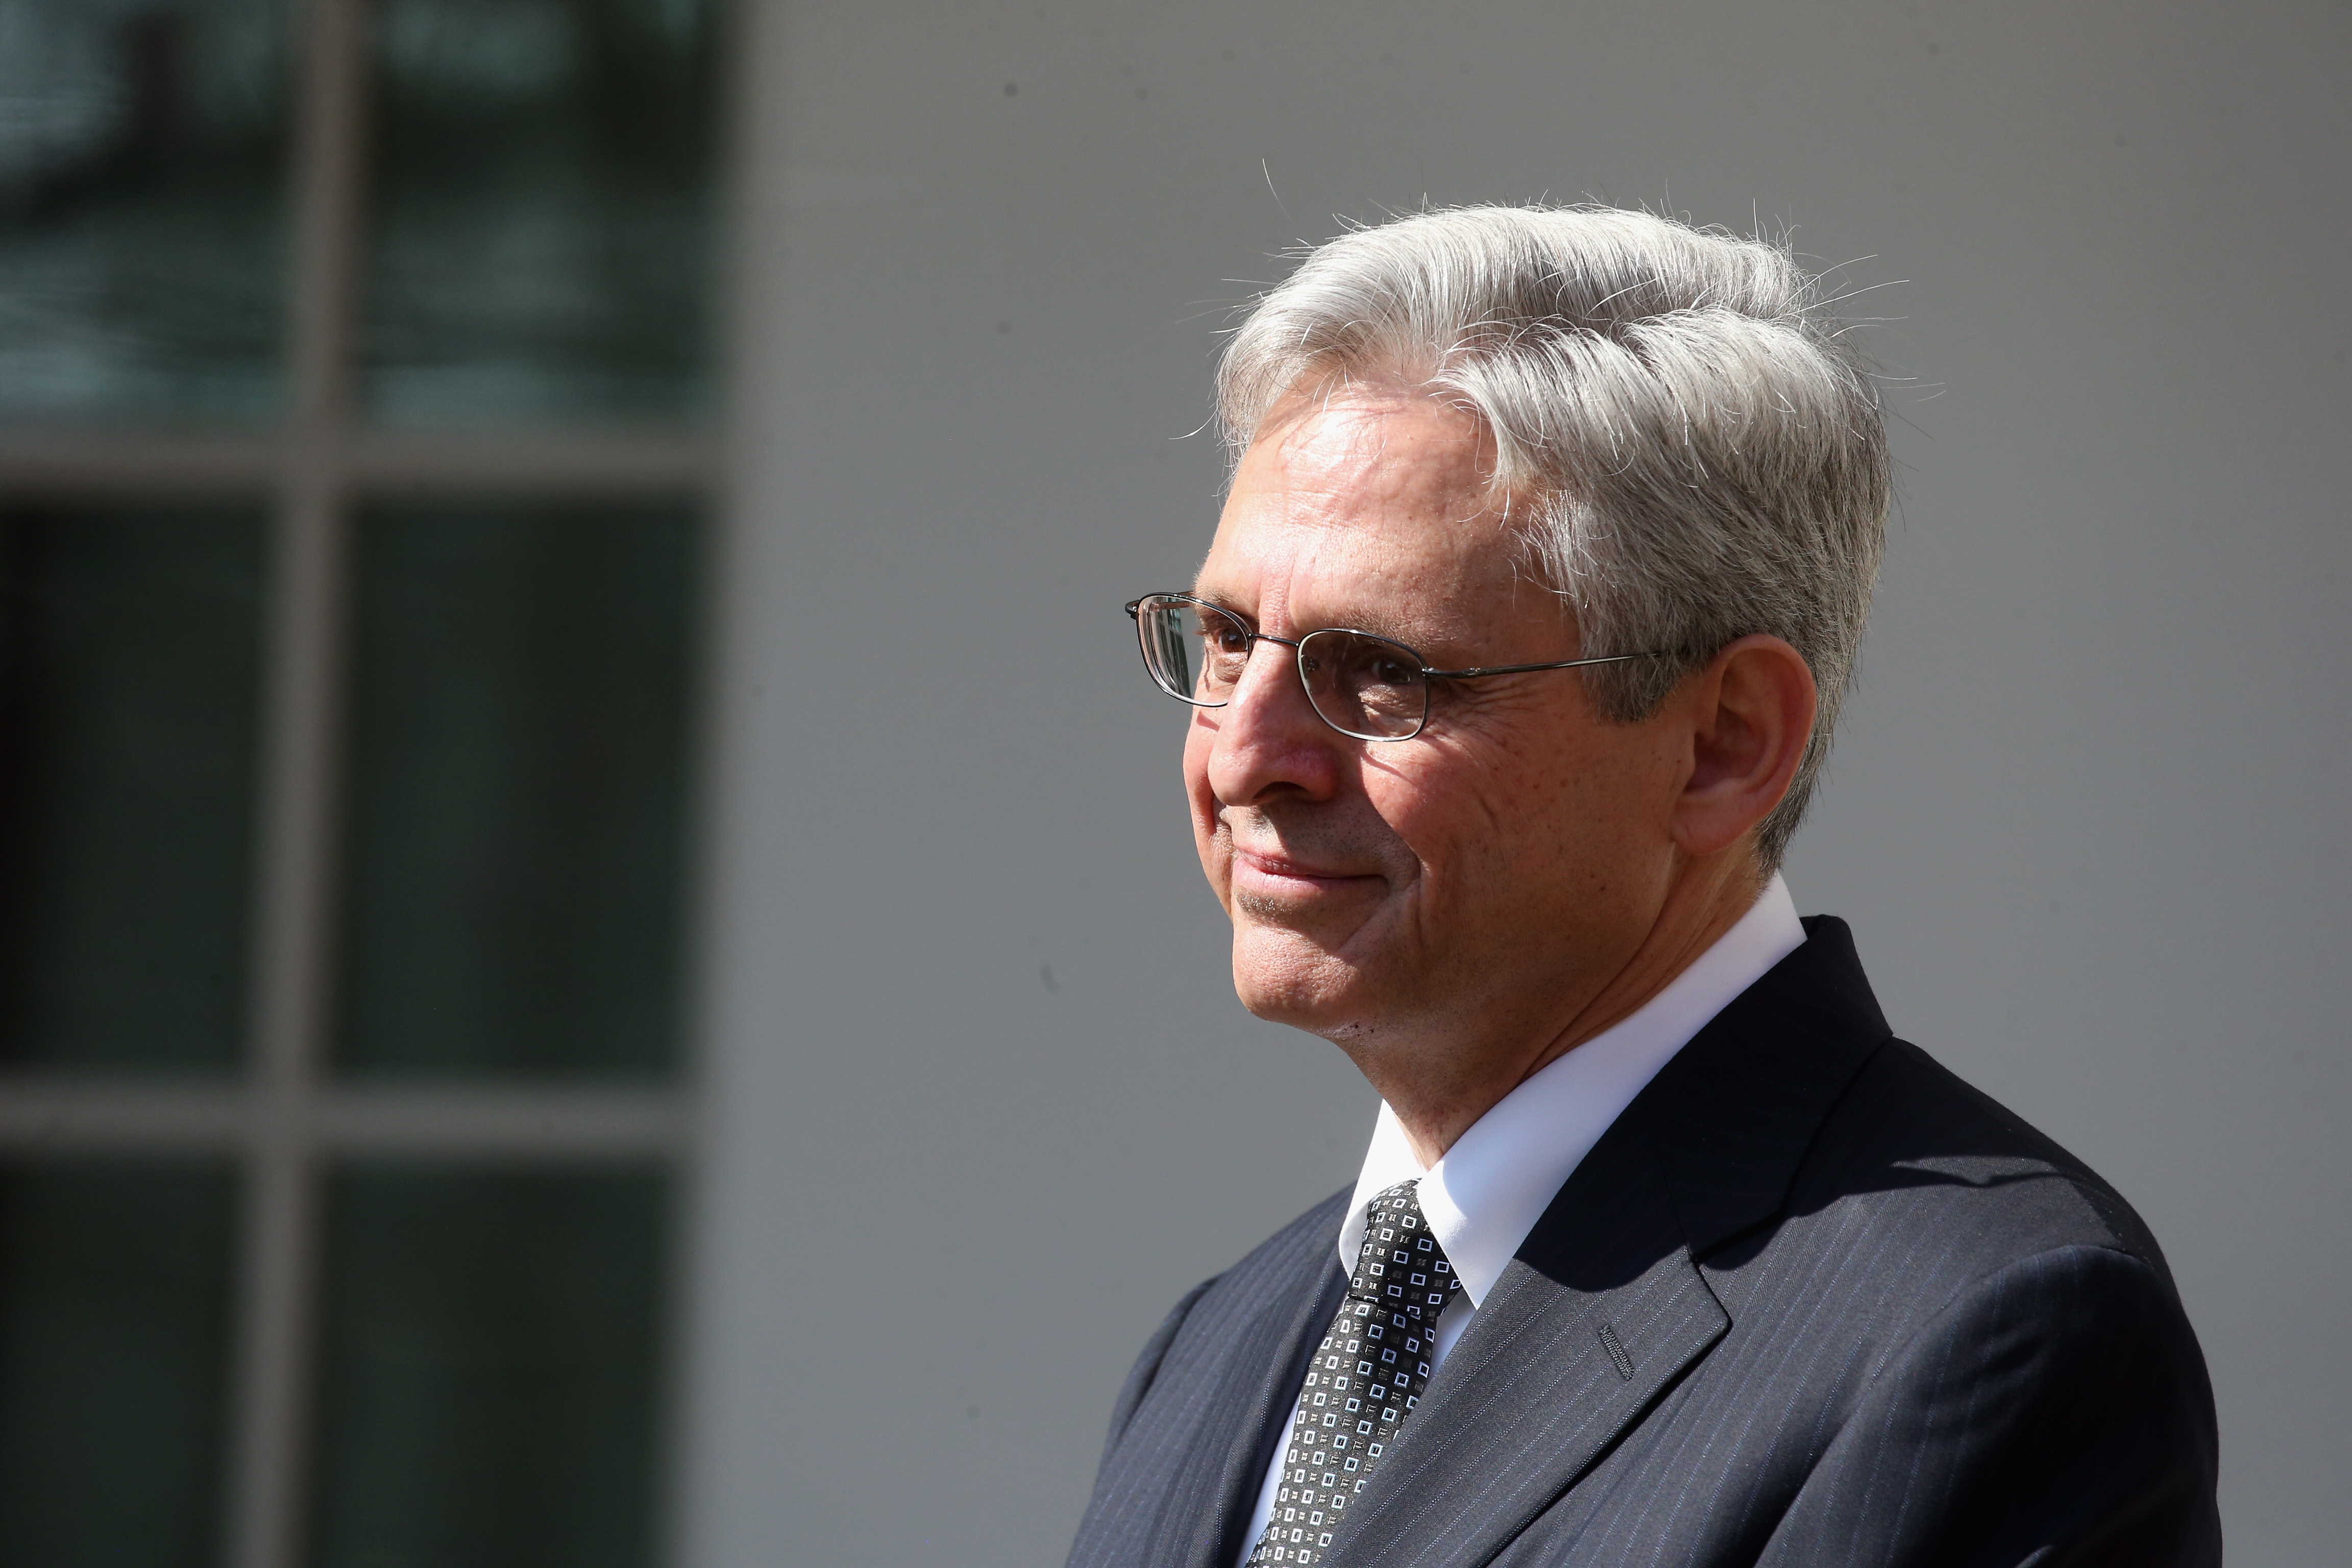 Chief Judge Merrick B. Garland is introduced by U.S. President Barack Obama as the nominee for the Supreme Court in the Rose Garden at the White House in Washington, DC on March 16, 2016.